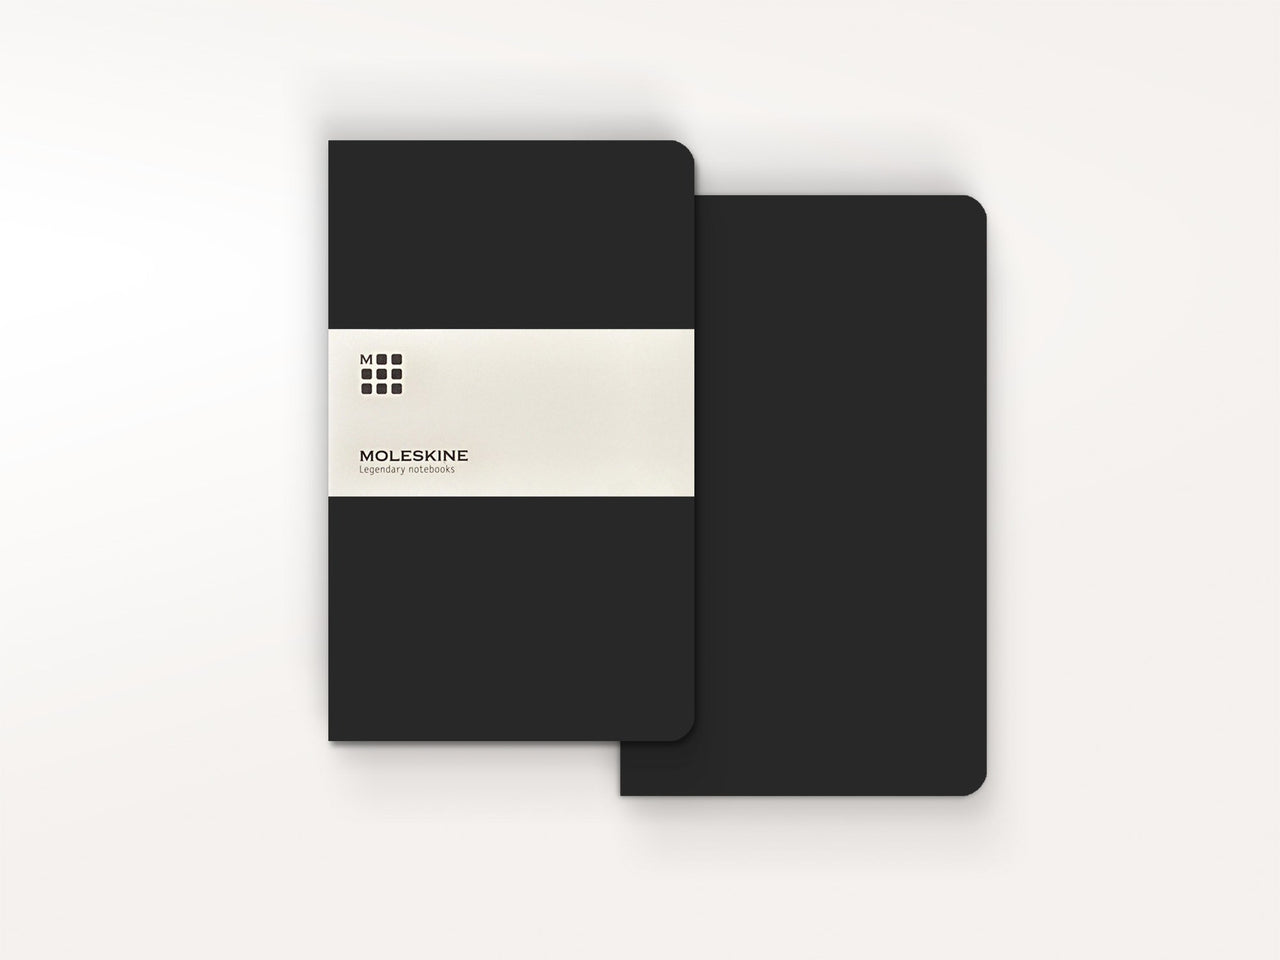 Notebooks - Moleskine Volant Journals - Black - Moleskine - 1